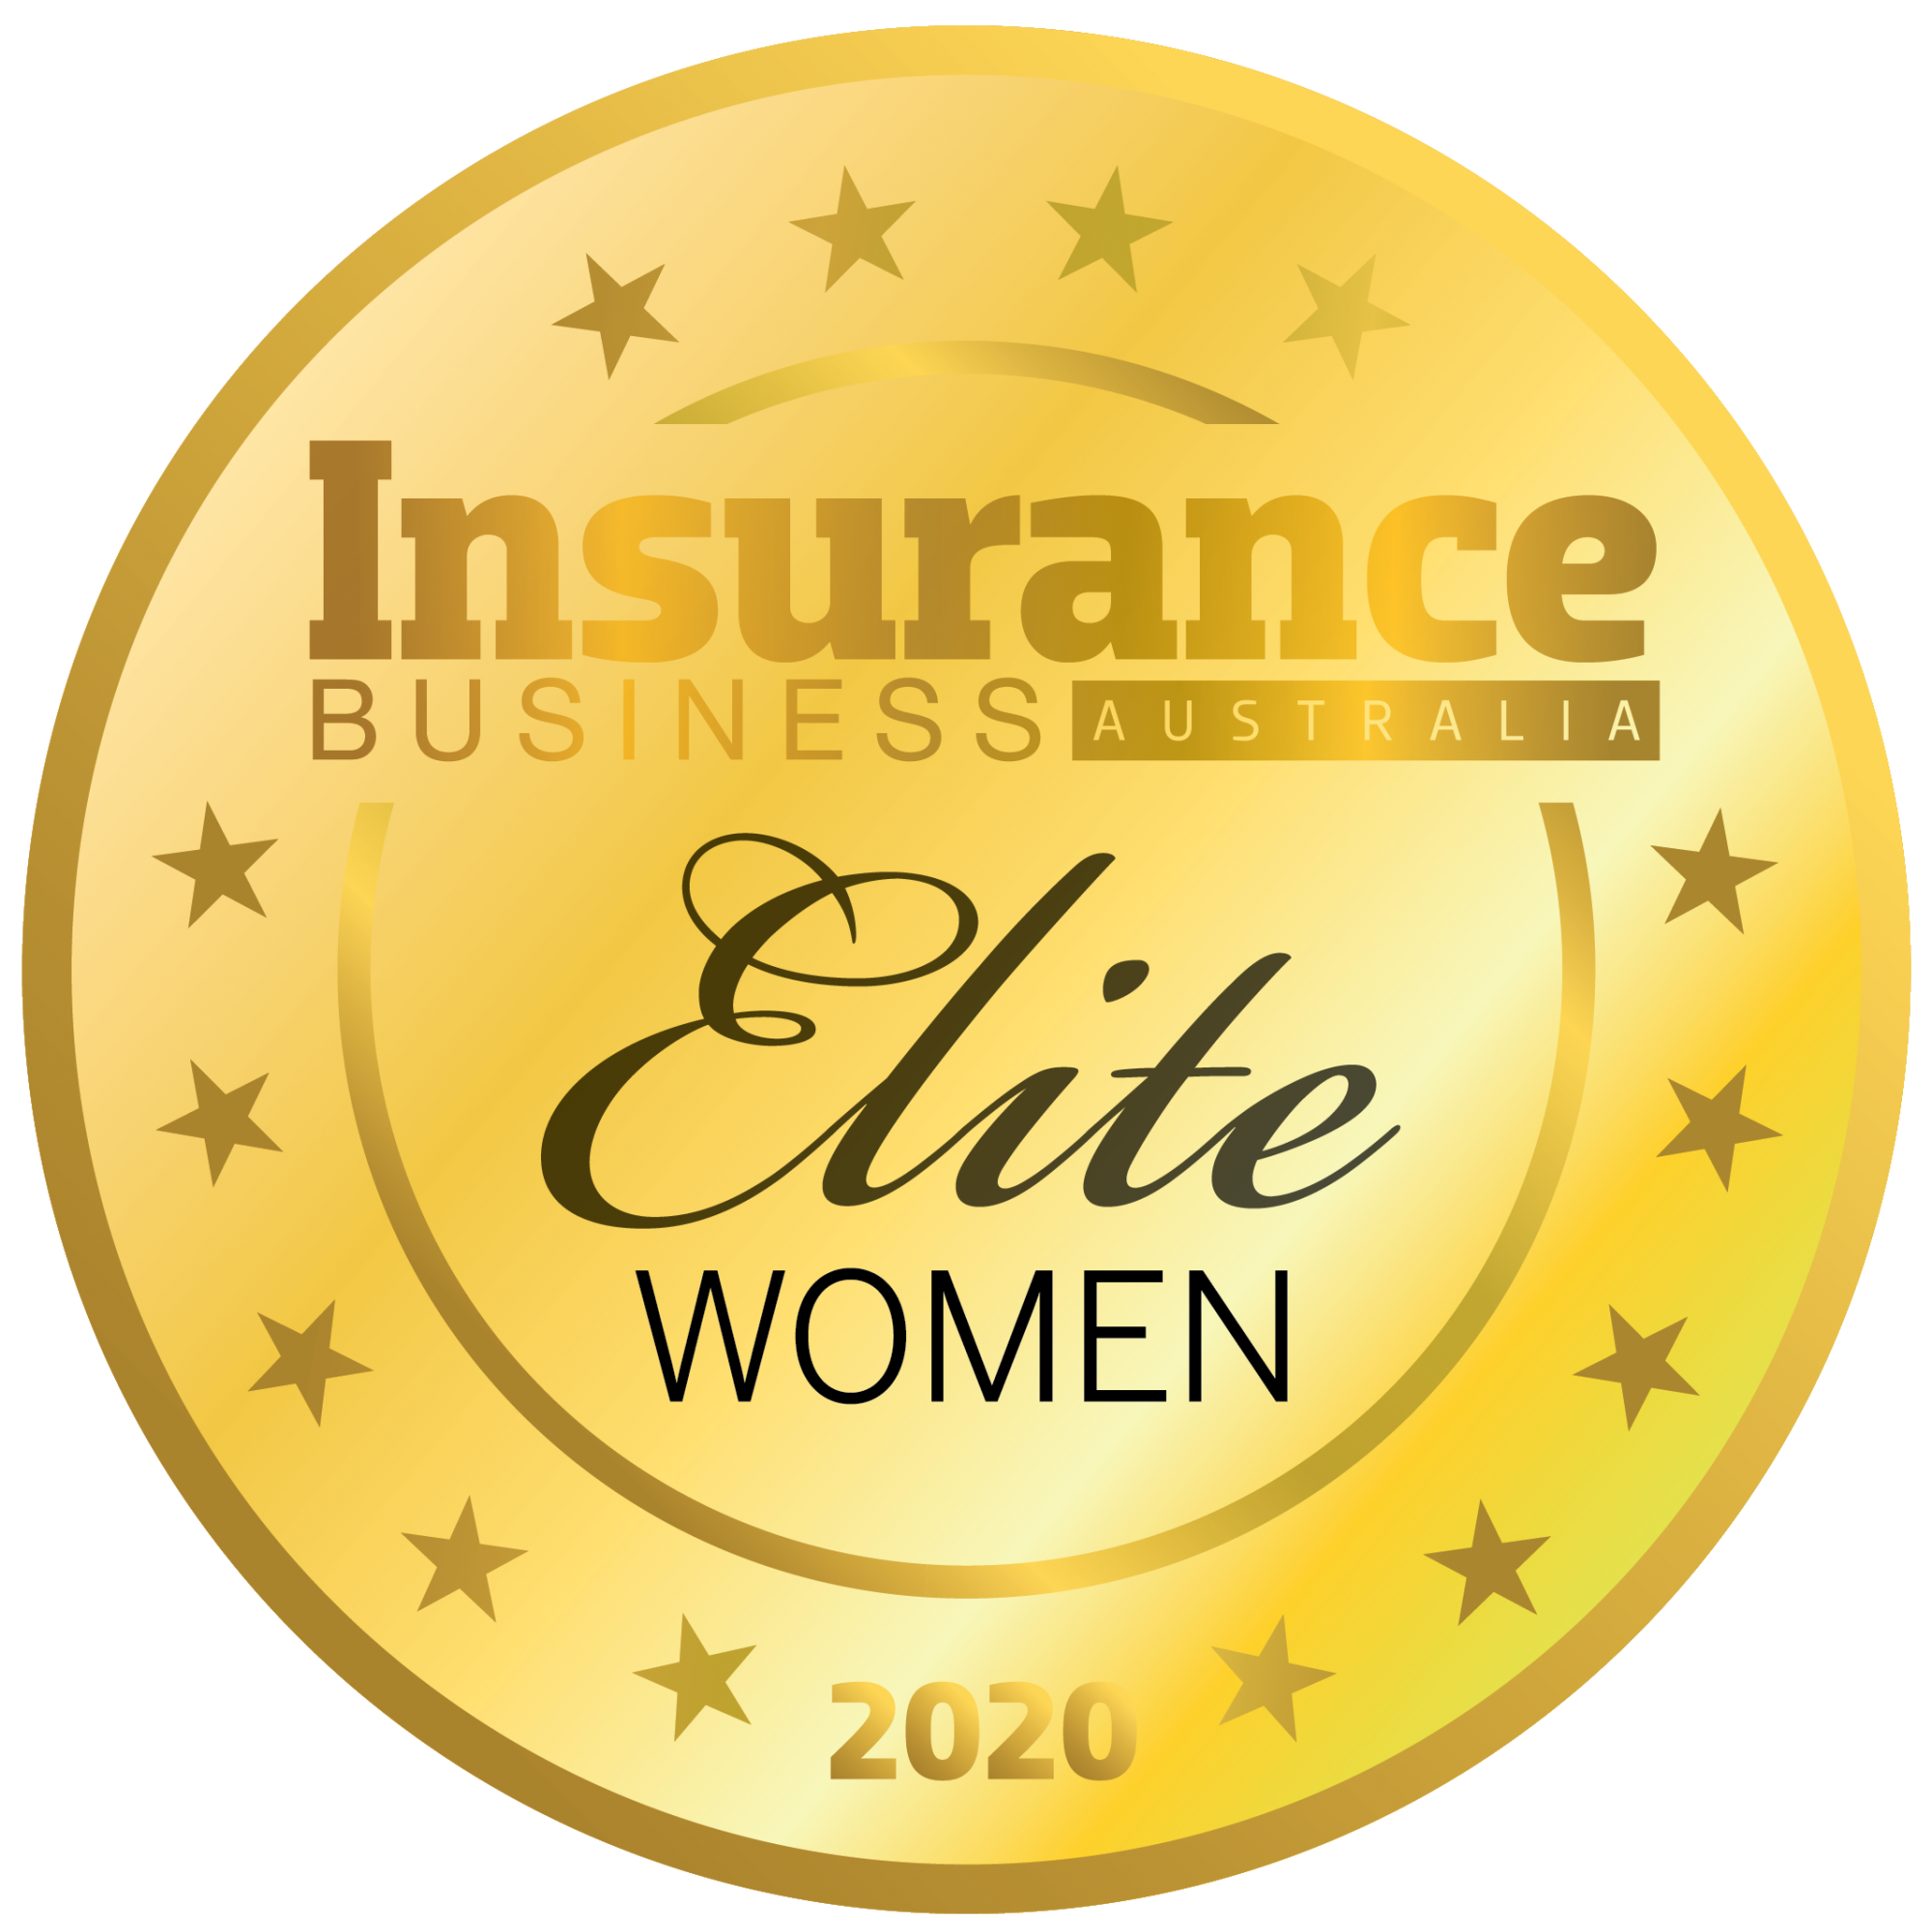 2020 Insurance Business Elite Women